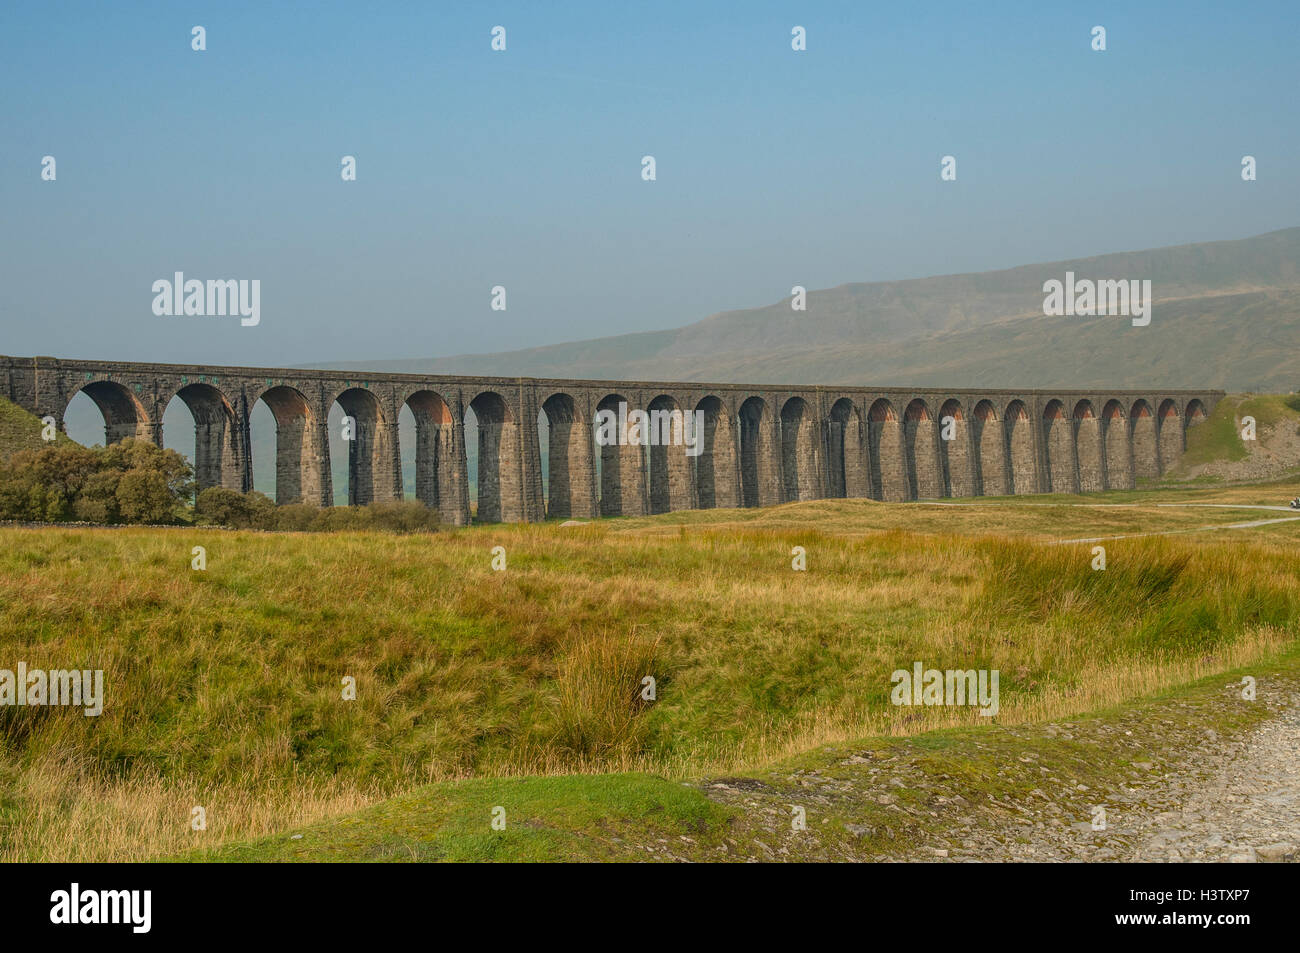 Ribblehead Viaduct, Yorkshire, England - Stock Image